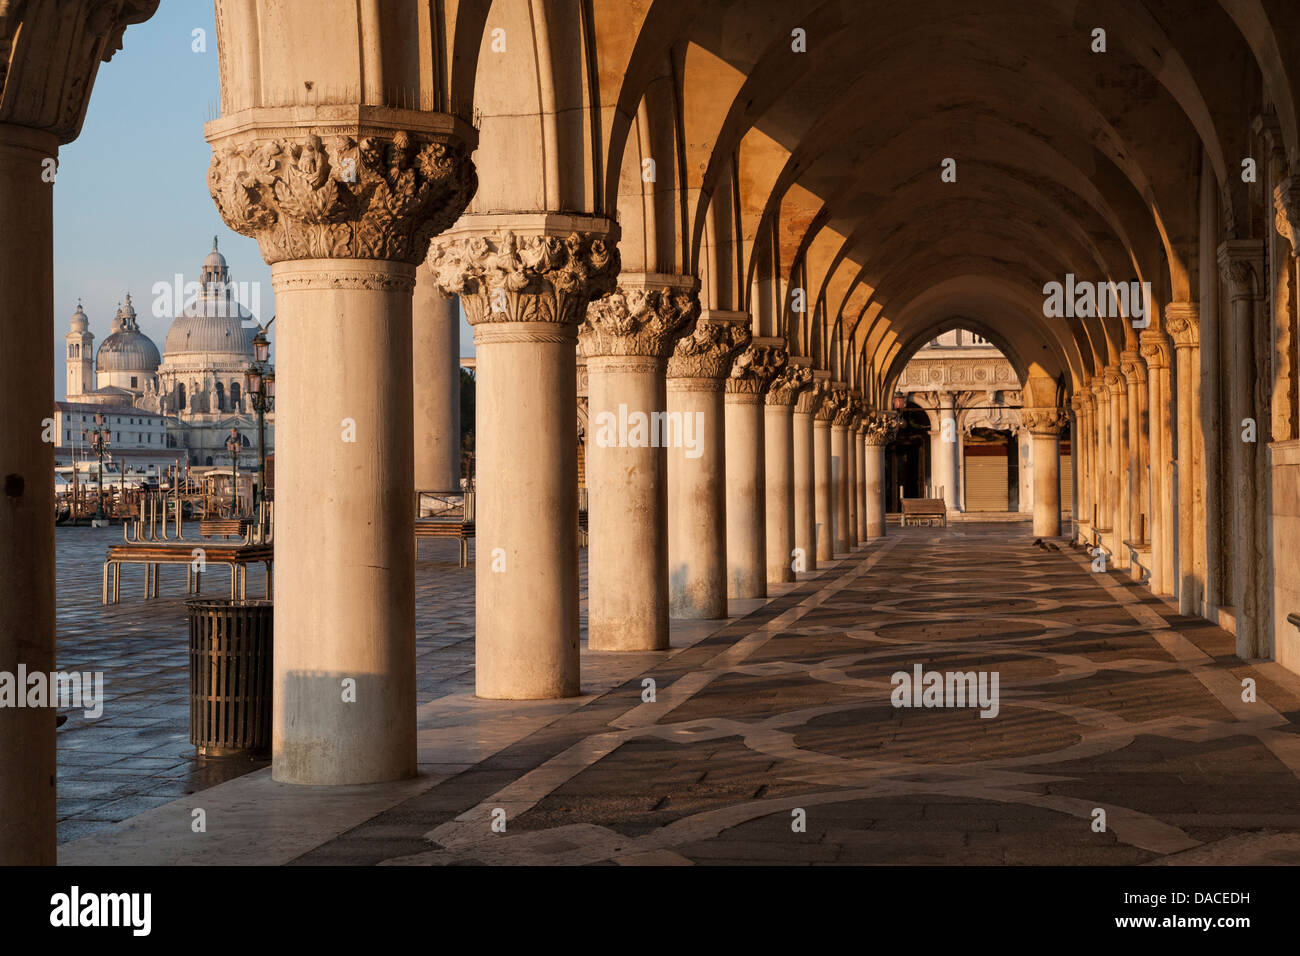 arcades-of-the-doges-palace-at-sunrise-venice-italy-DACEDH.jpg